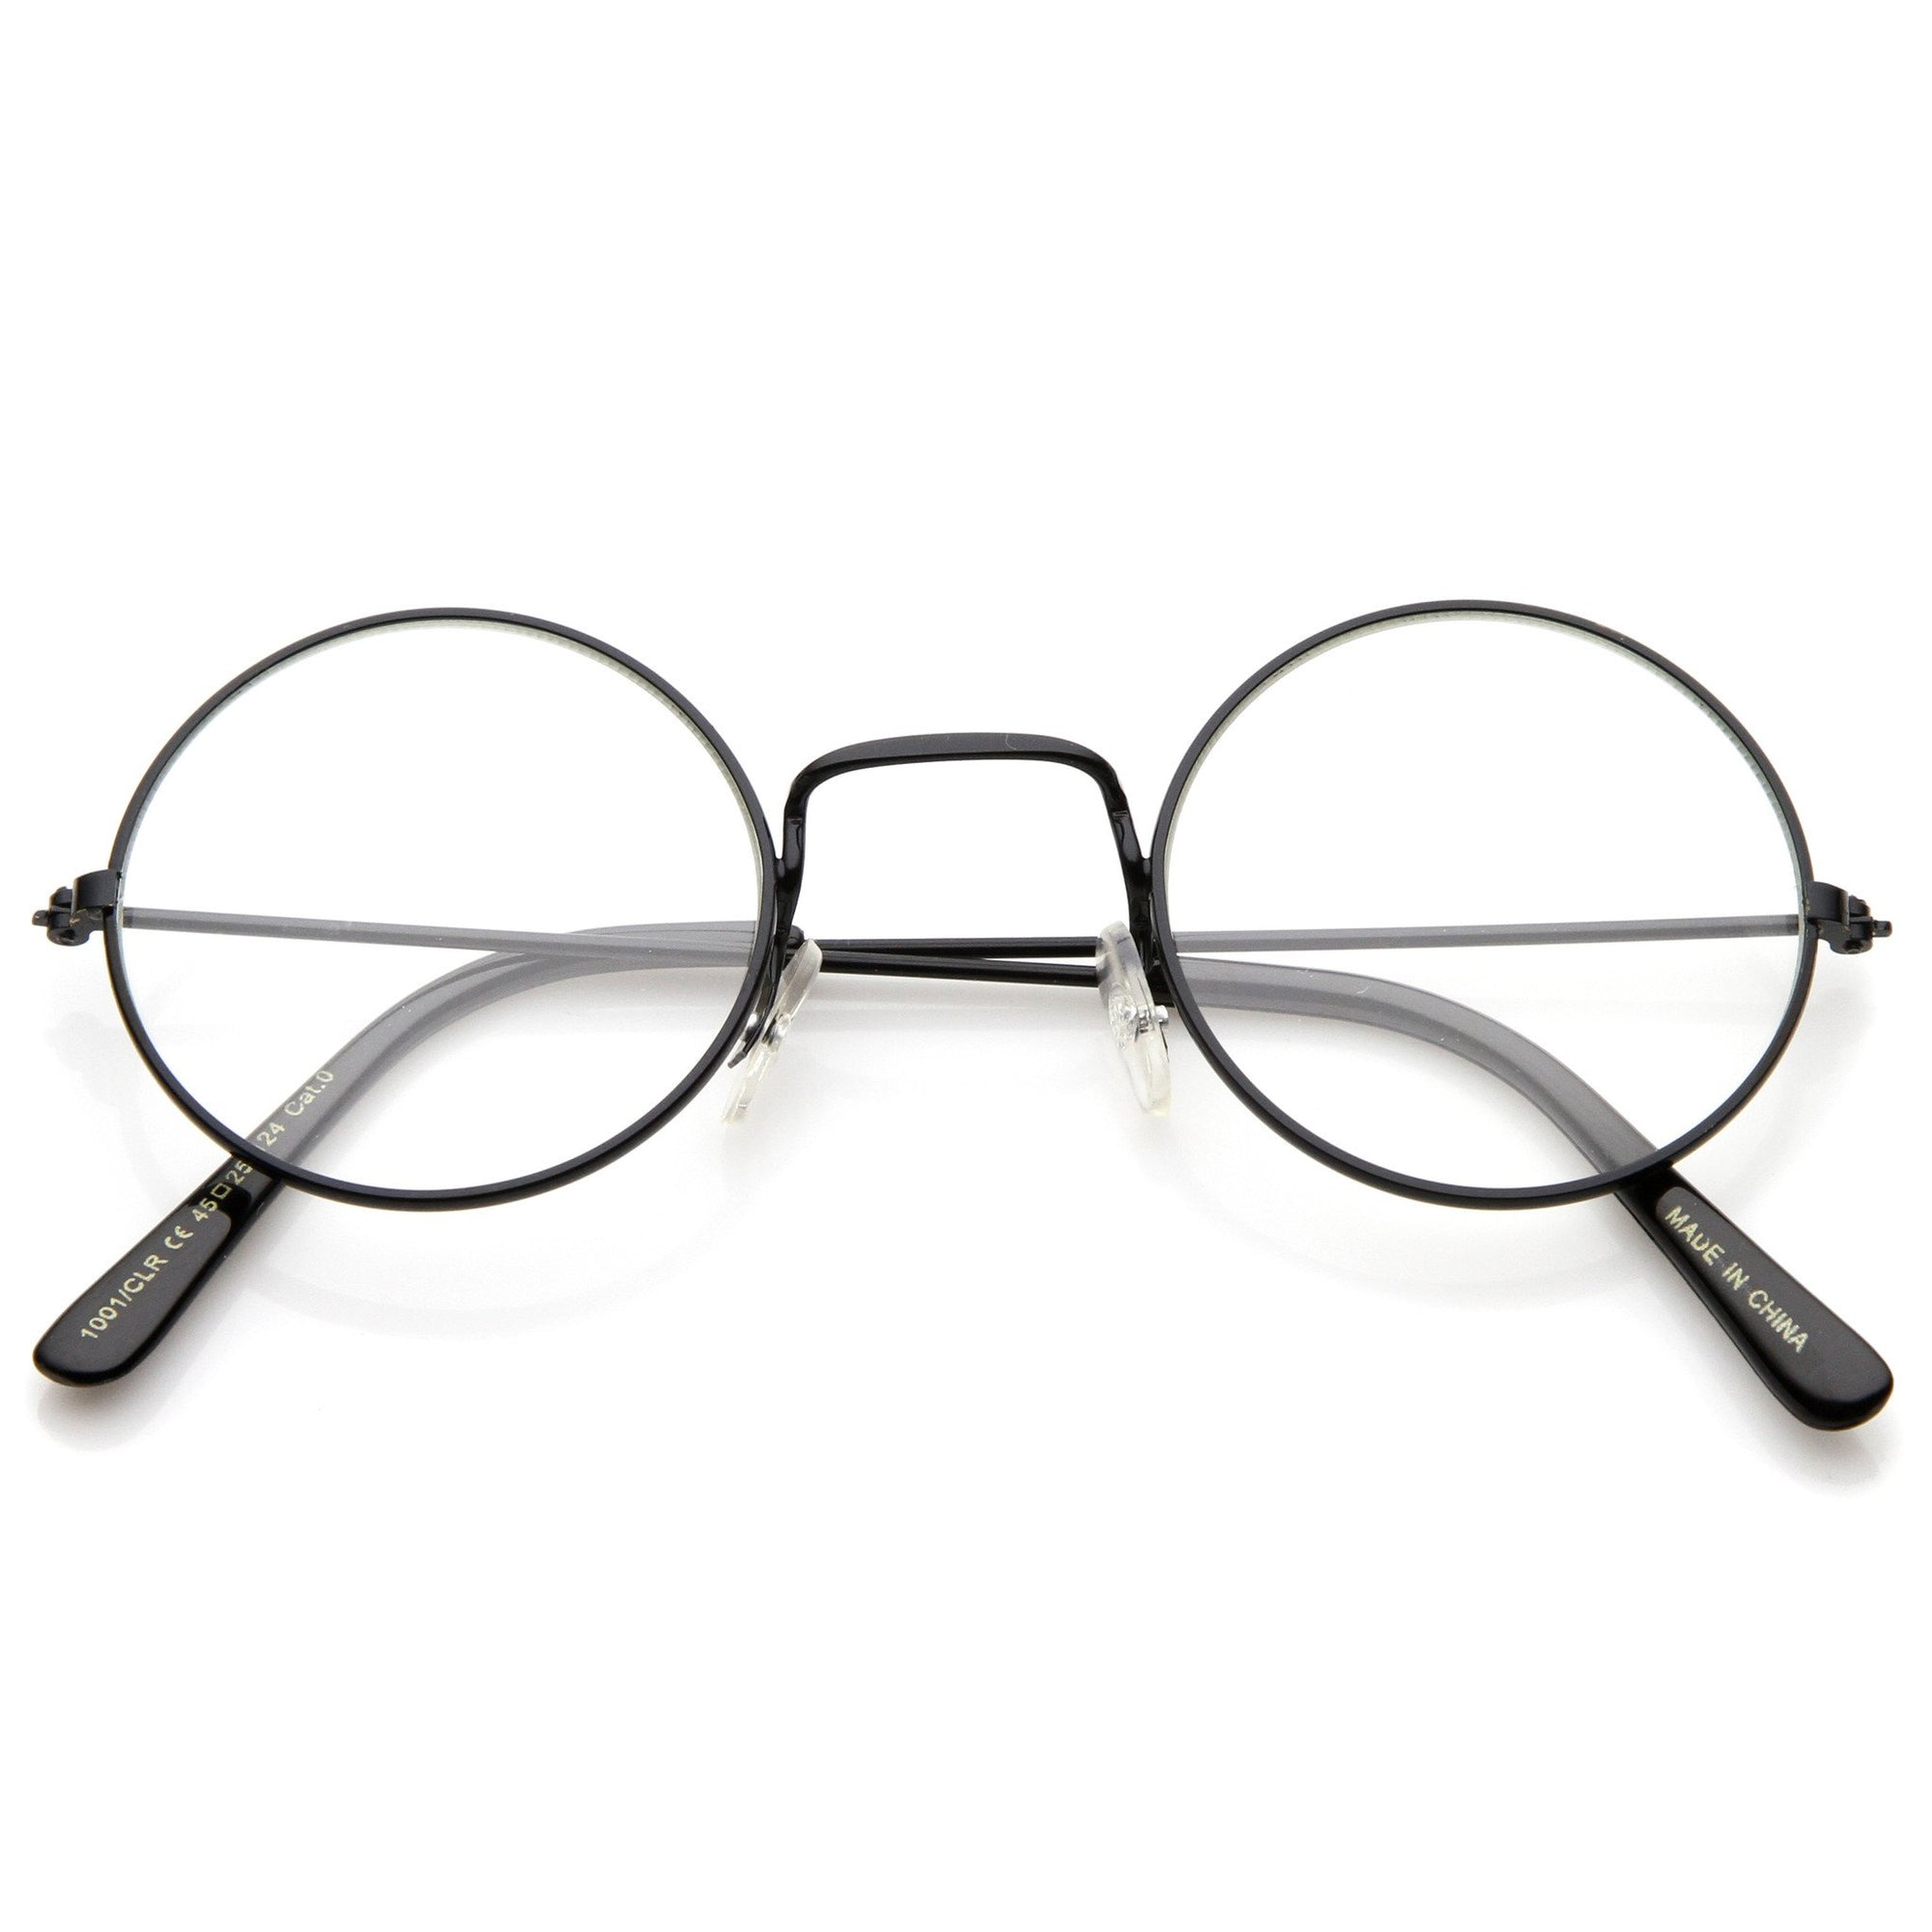 13cbee23b53 ... Vintage Inspired Round Metal Frame Clear Lens Glasses 9637 · Black Clear